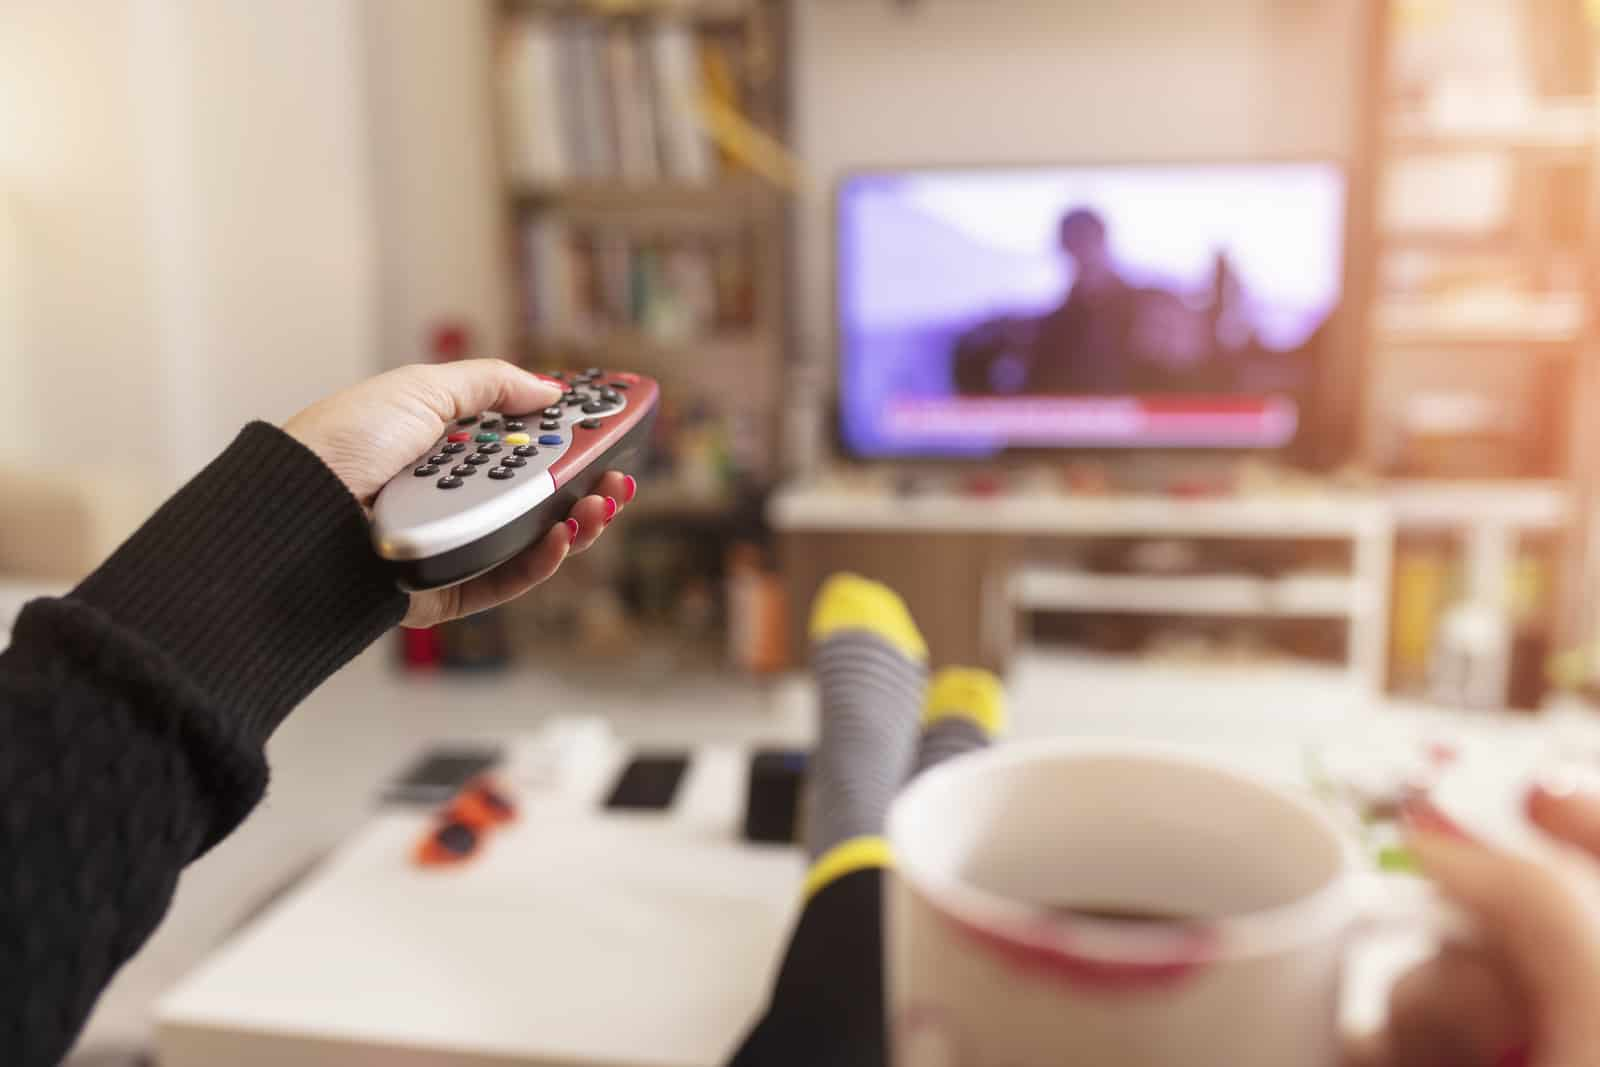 woman holding tv remote, watching tv and drinking coffee